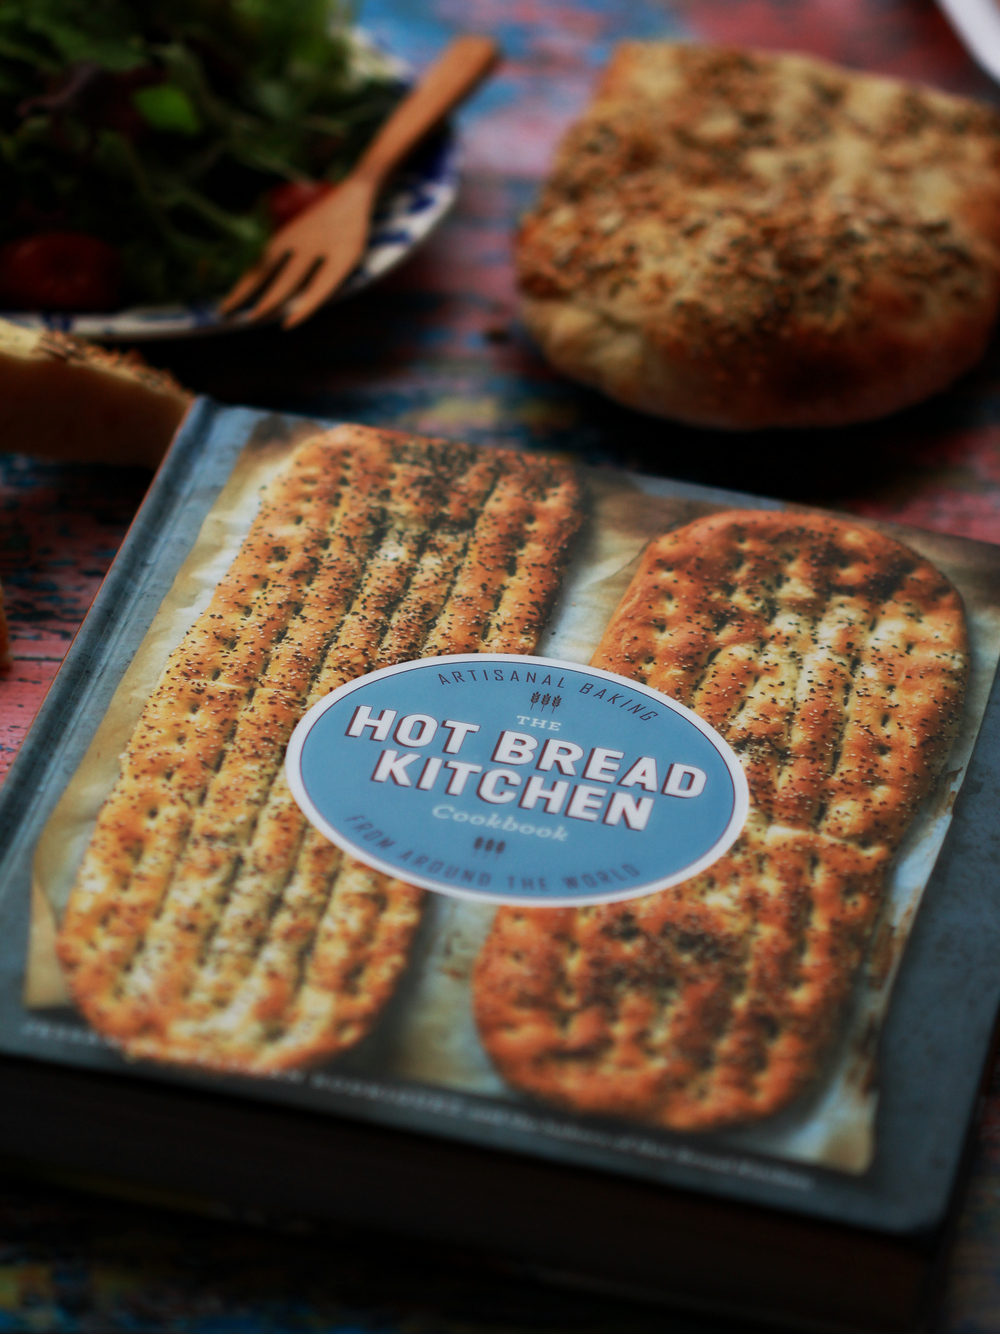 The Hot Bread Kitchen by Dena T Bray